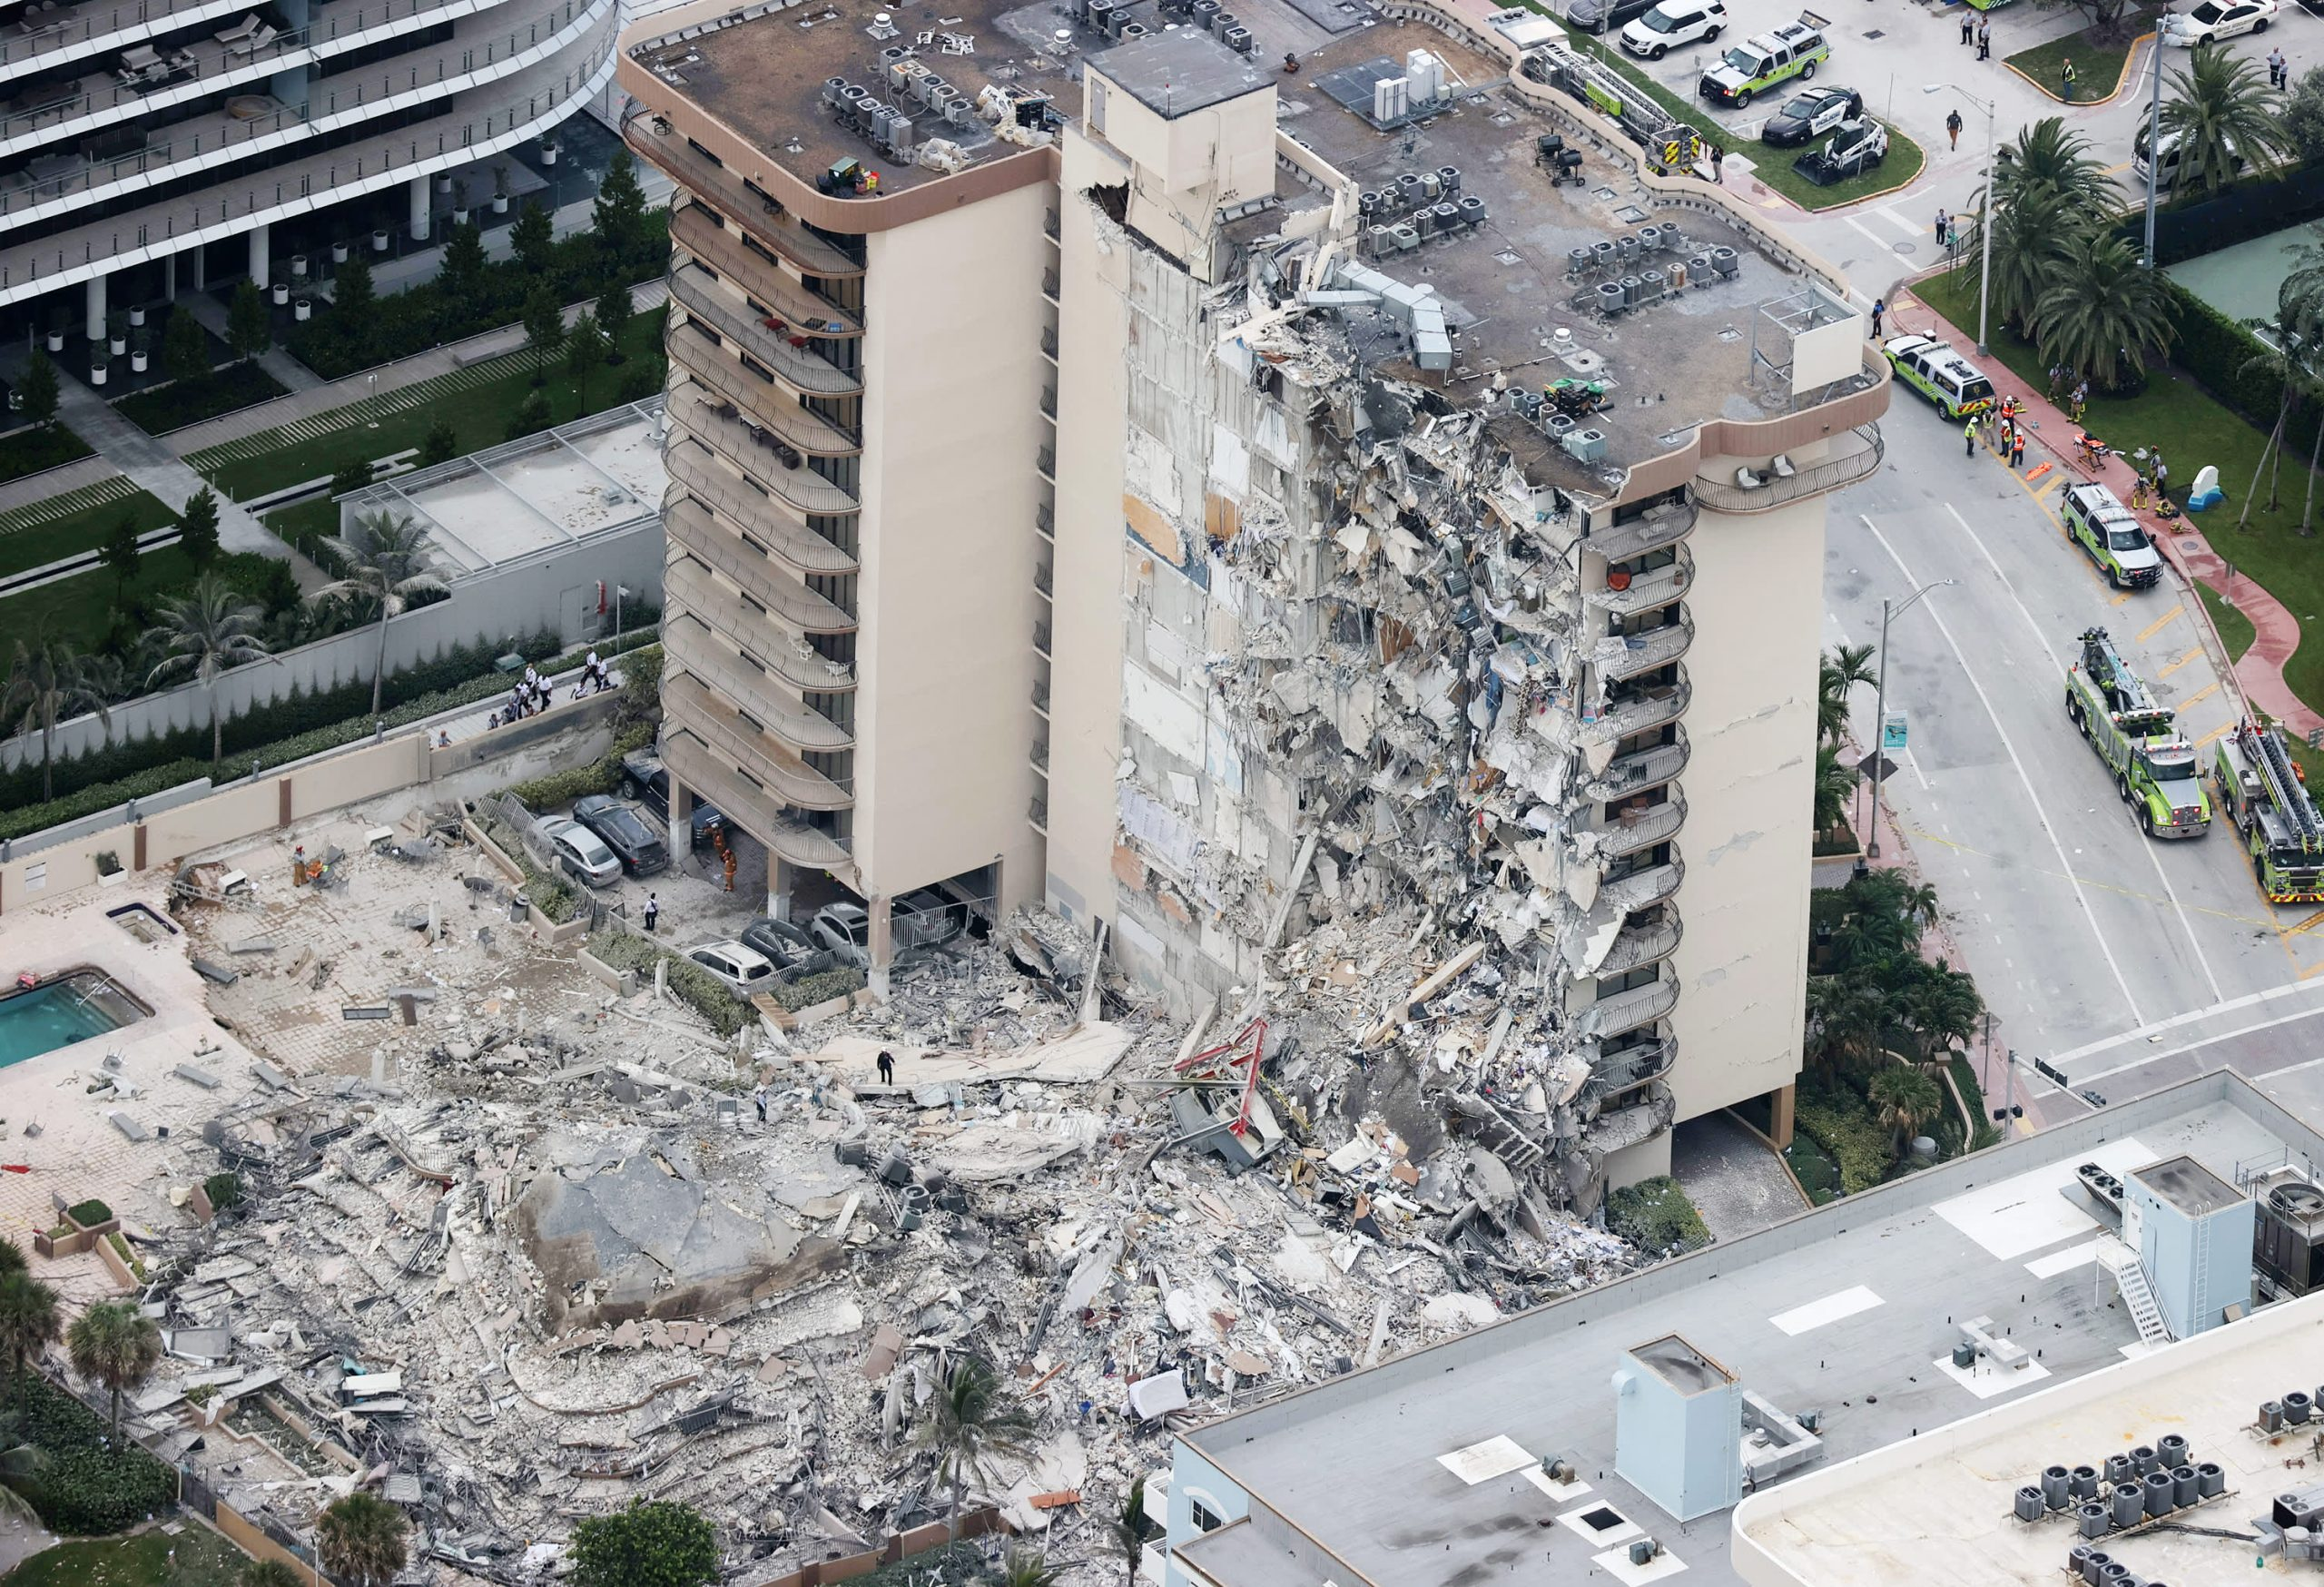 Engineer found major structural damage to Florida condo tower nearly three years before collapse